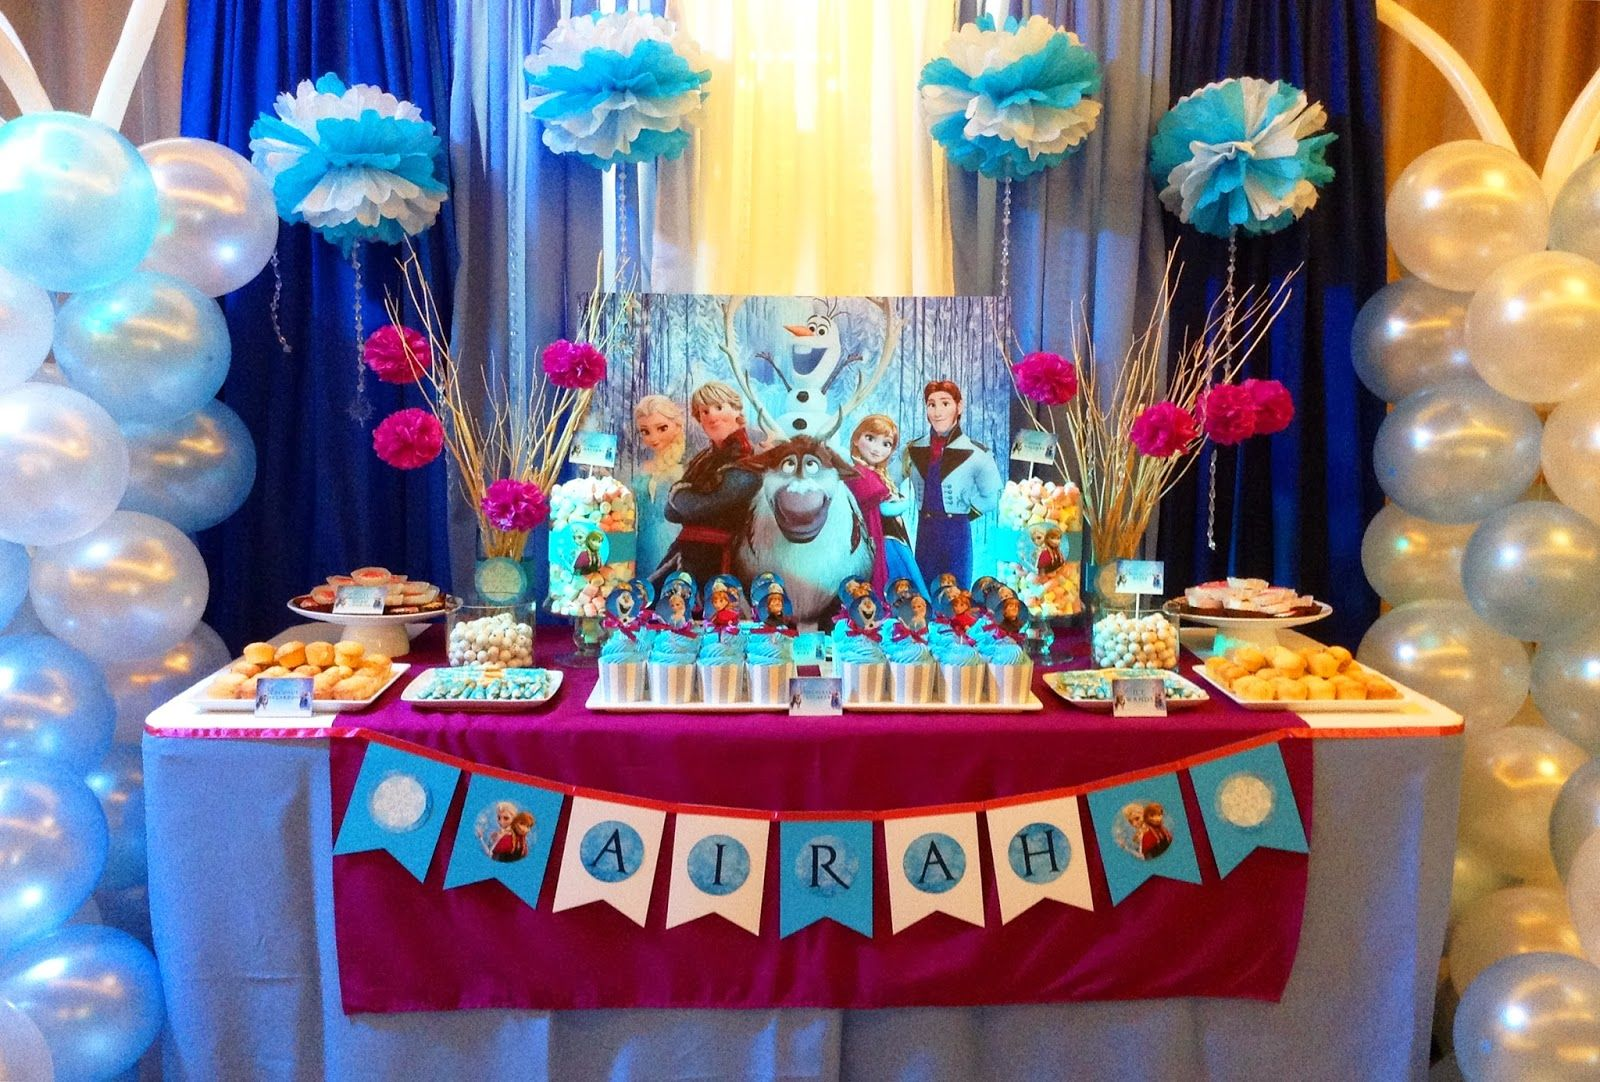 Disney Theme Decorations Disney Frozen Themed Birthday Party Party Ideas Pinterest